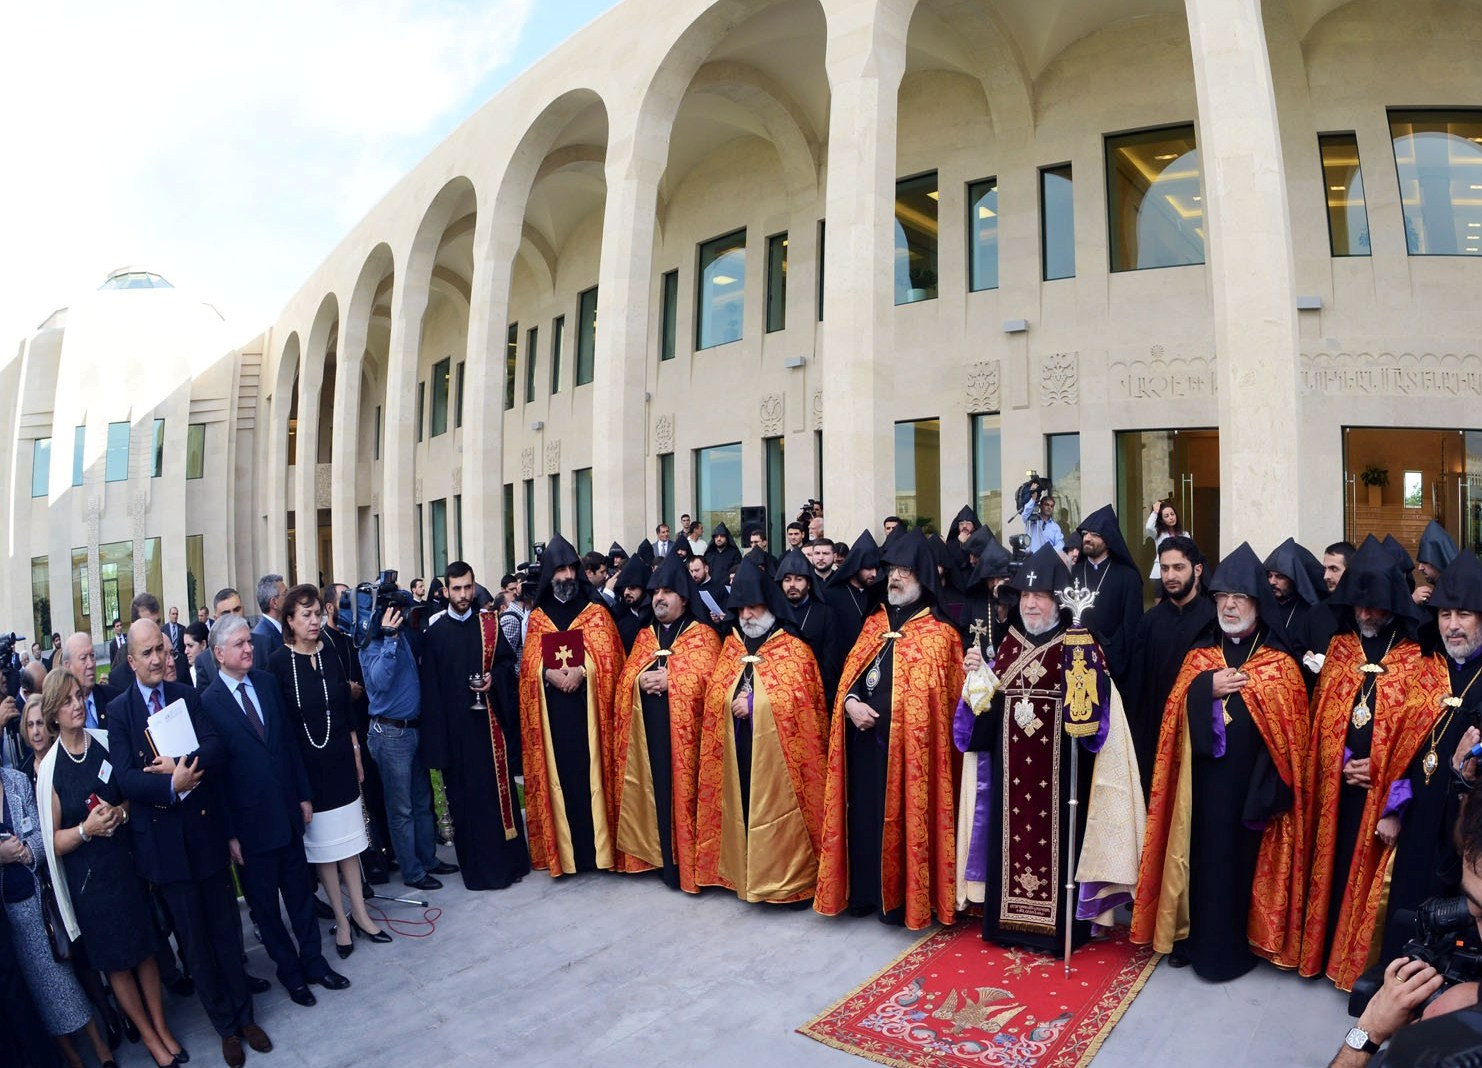 Opening of the Vatche and Tamar Manoukian Library in the Mother See of Holy Etchmiadzin